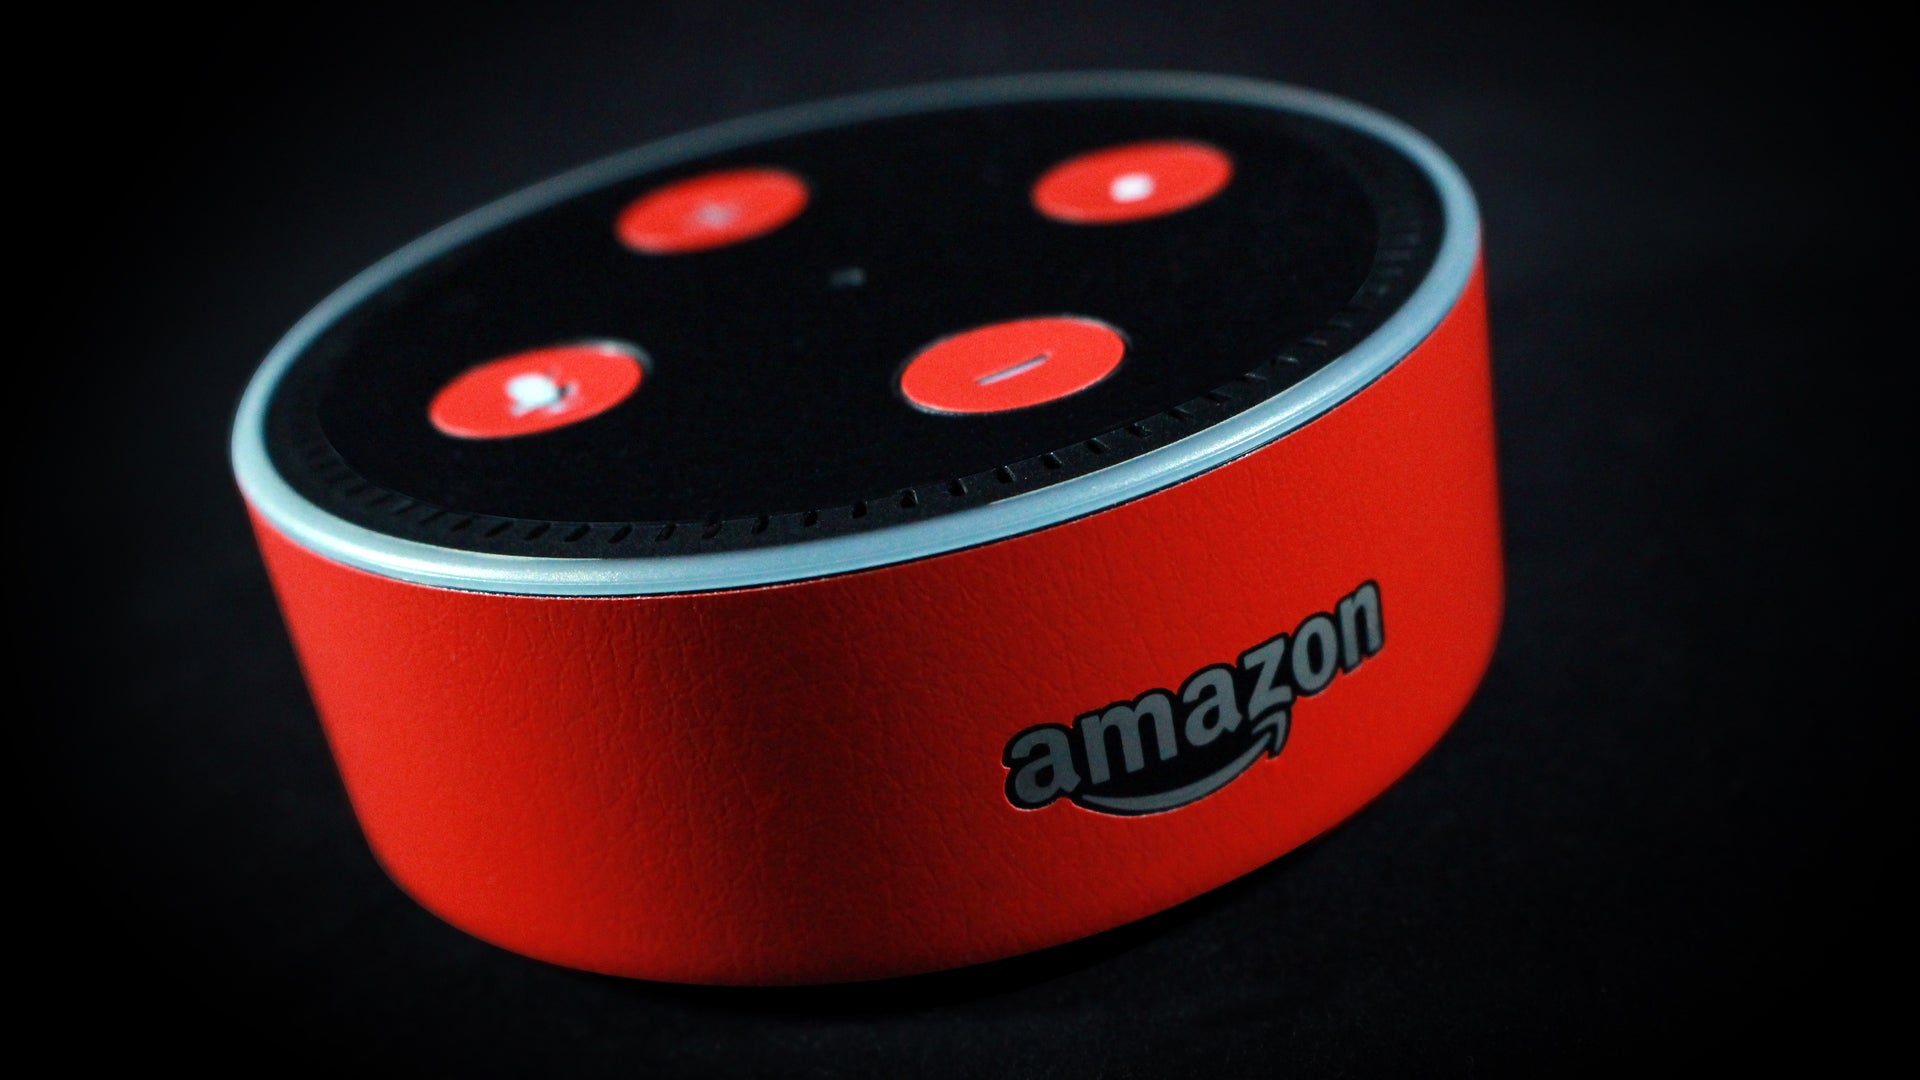 Amazon Echo Dot Red Leather Skins